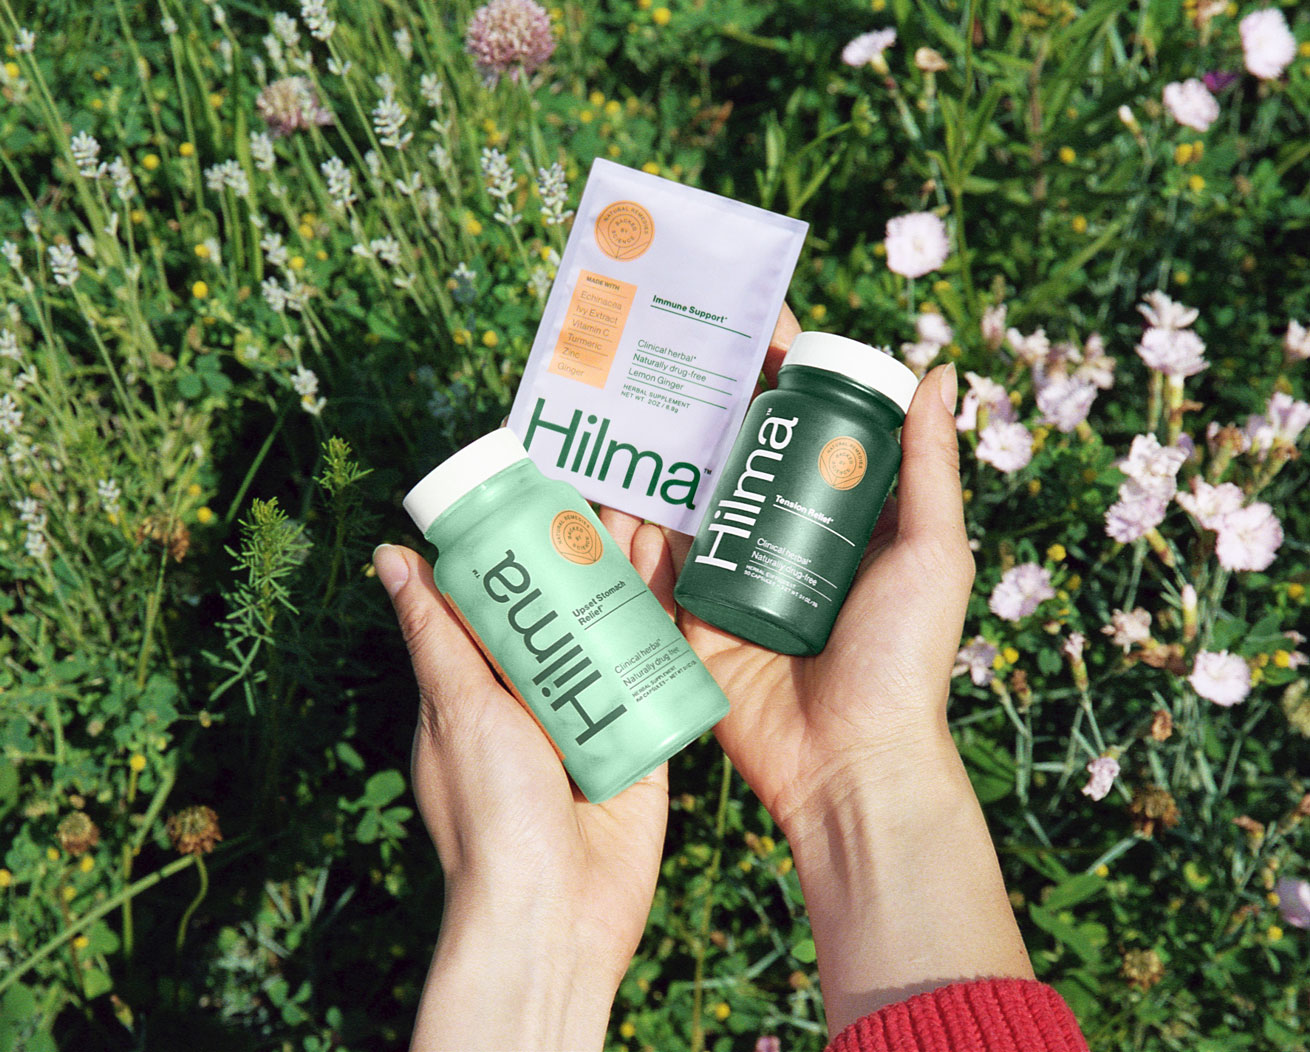 hilma, natural remedy, medicine, immune support, supplement